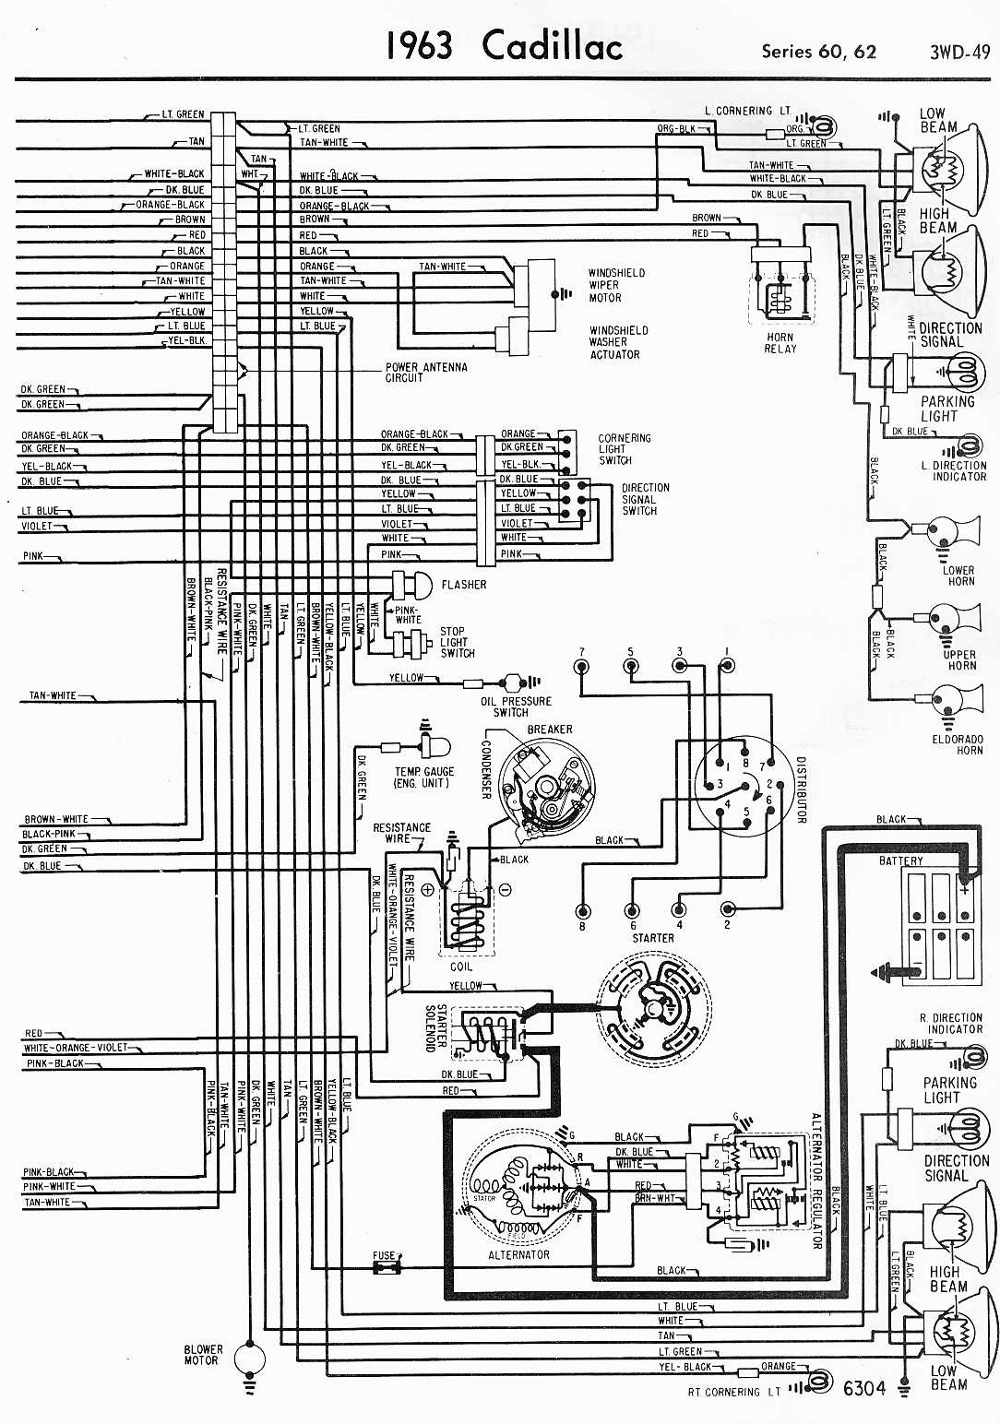 1941 Cadillac Engine Diagram Auto Electrical Wiring 1935 Chevrolet Diagrams Schematics 1963 Series 60 And 62 Part 2 Schematic 1937